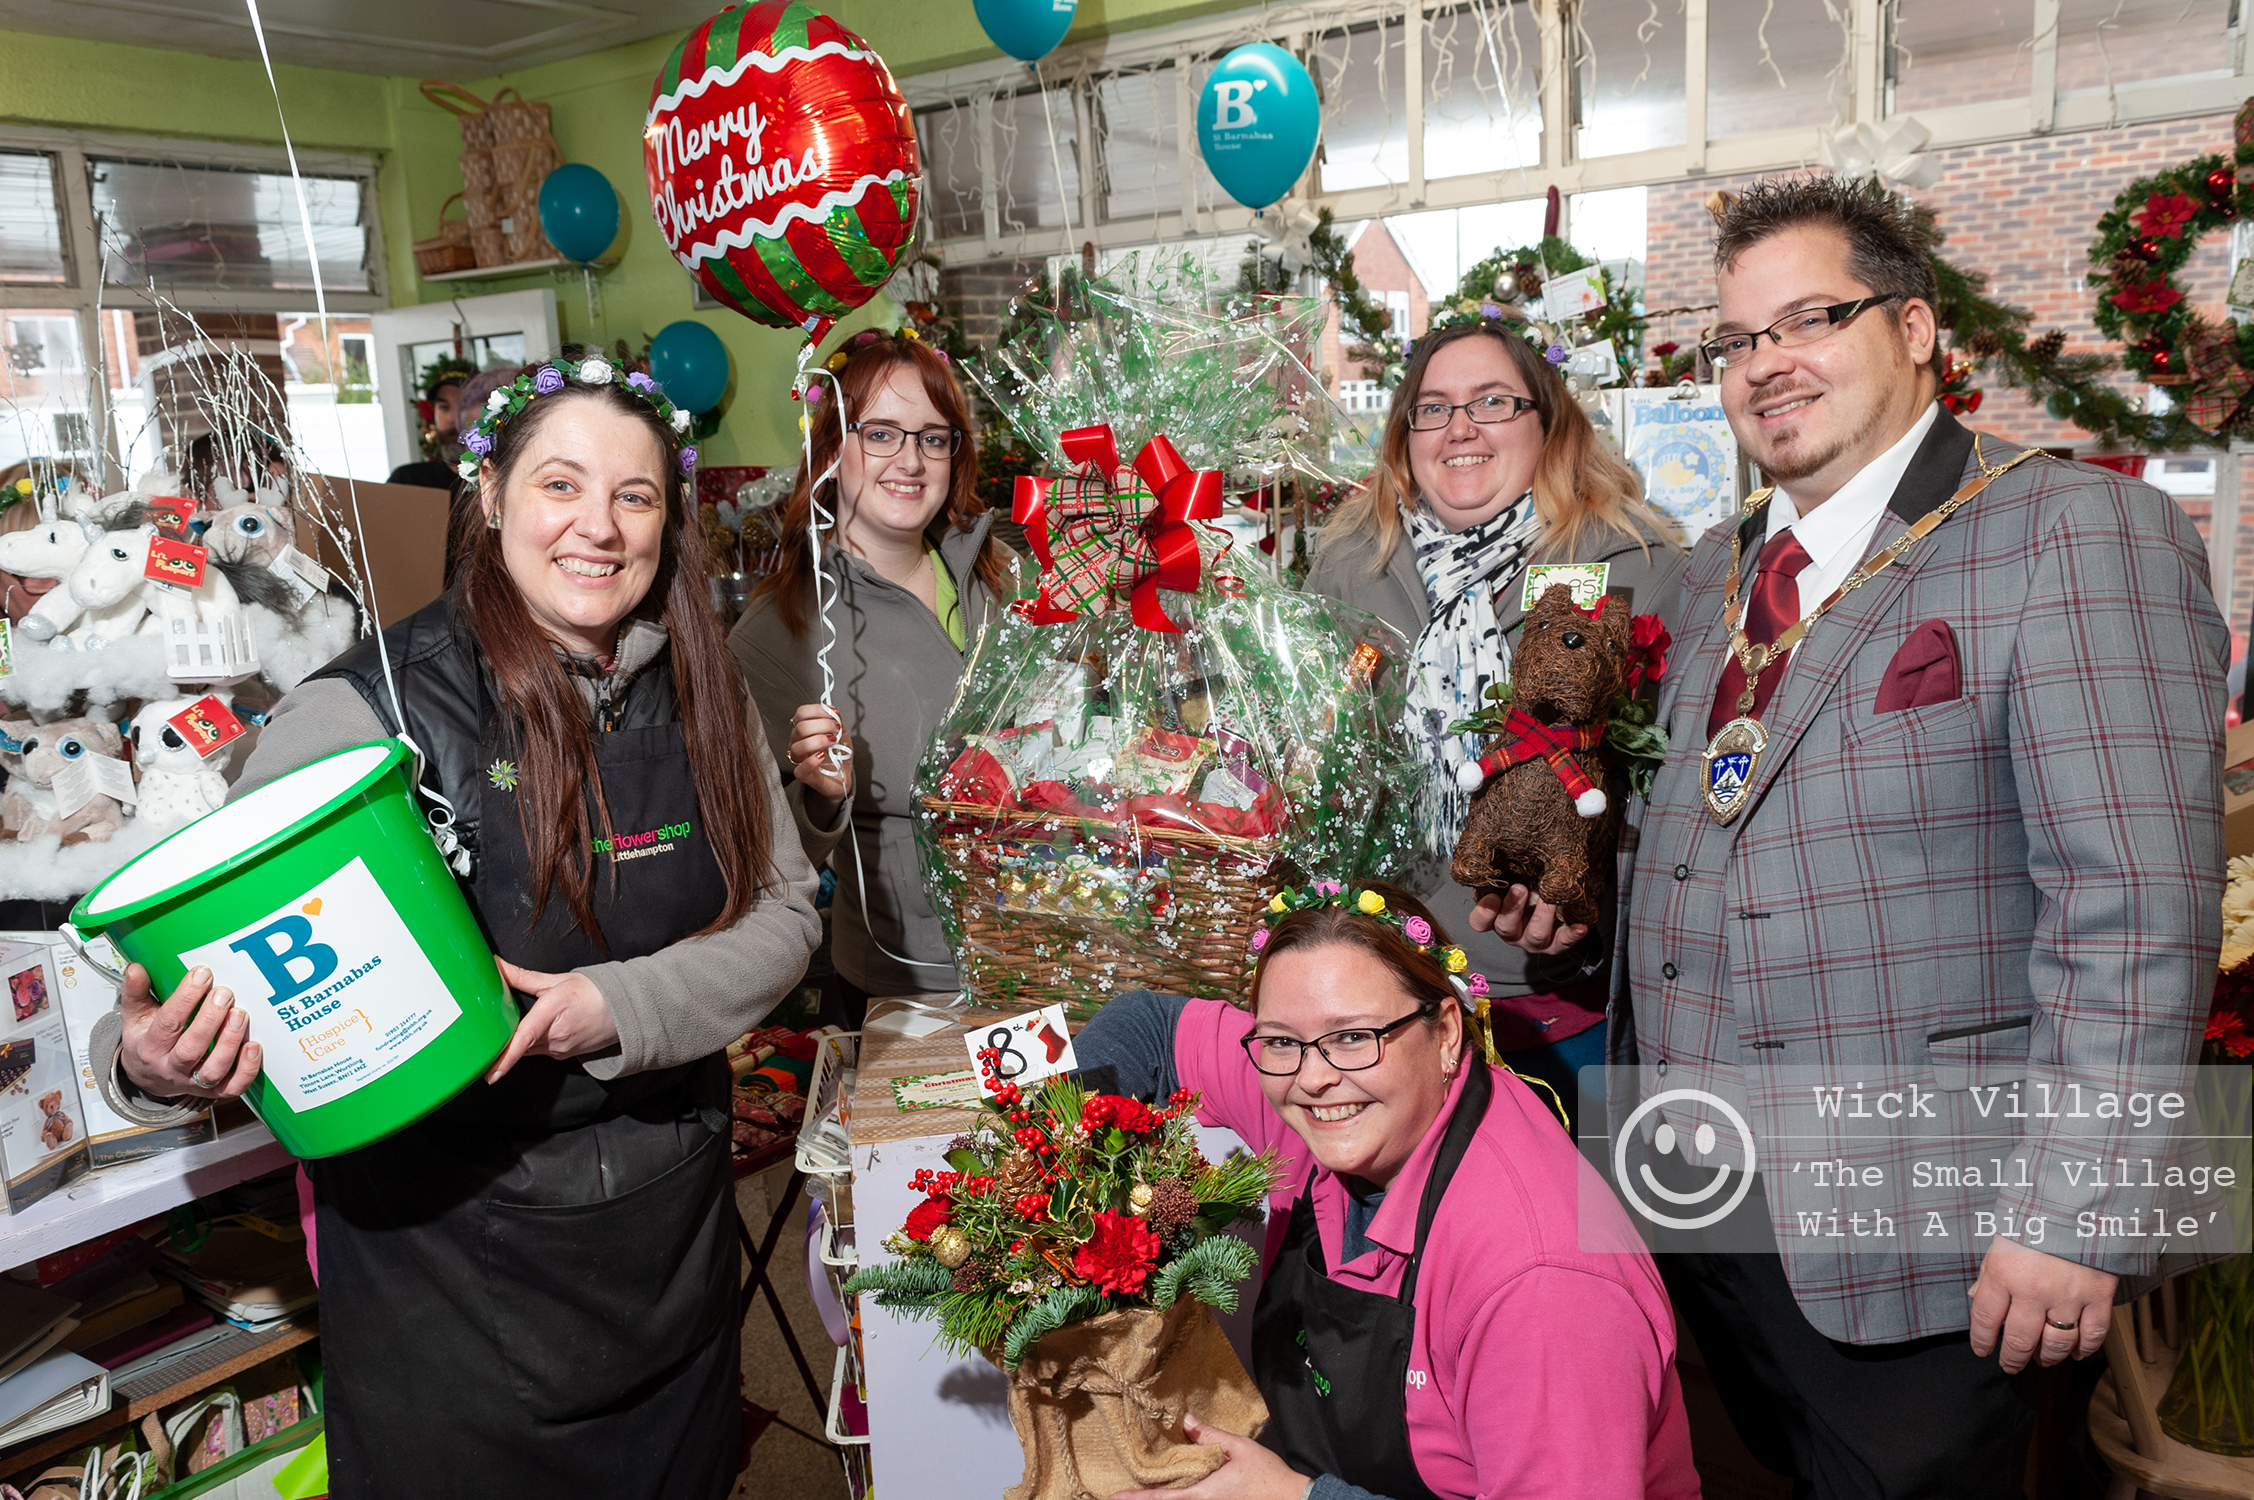 Staff at The Flower Shop in Wick Village raise funds for St Barnabas House during their annual Christmas Event at the florists in Wick Street. In Pic: The Mayor of Littlehampton, Councillor Billy Blanchard-Cooper with the staff of The Flower Shop. Photo ©  Scott Ramsey Sussex PR Photographer